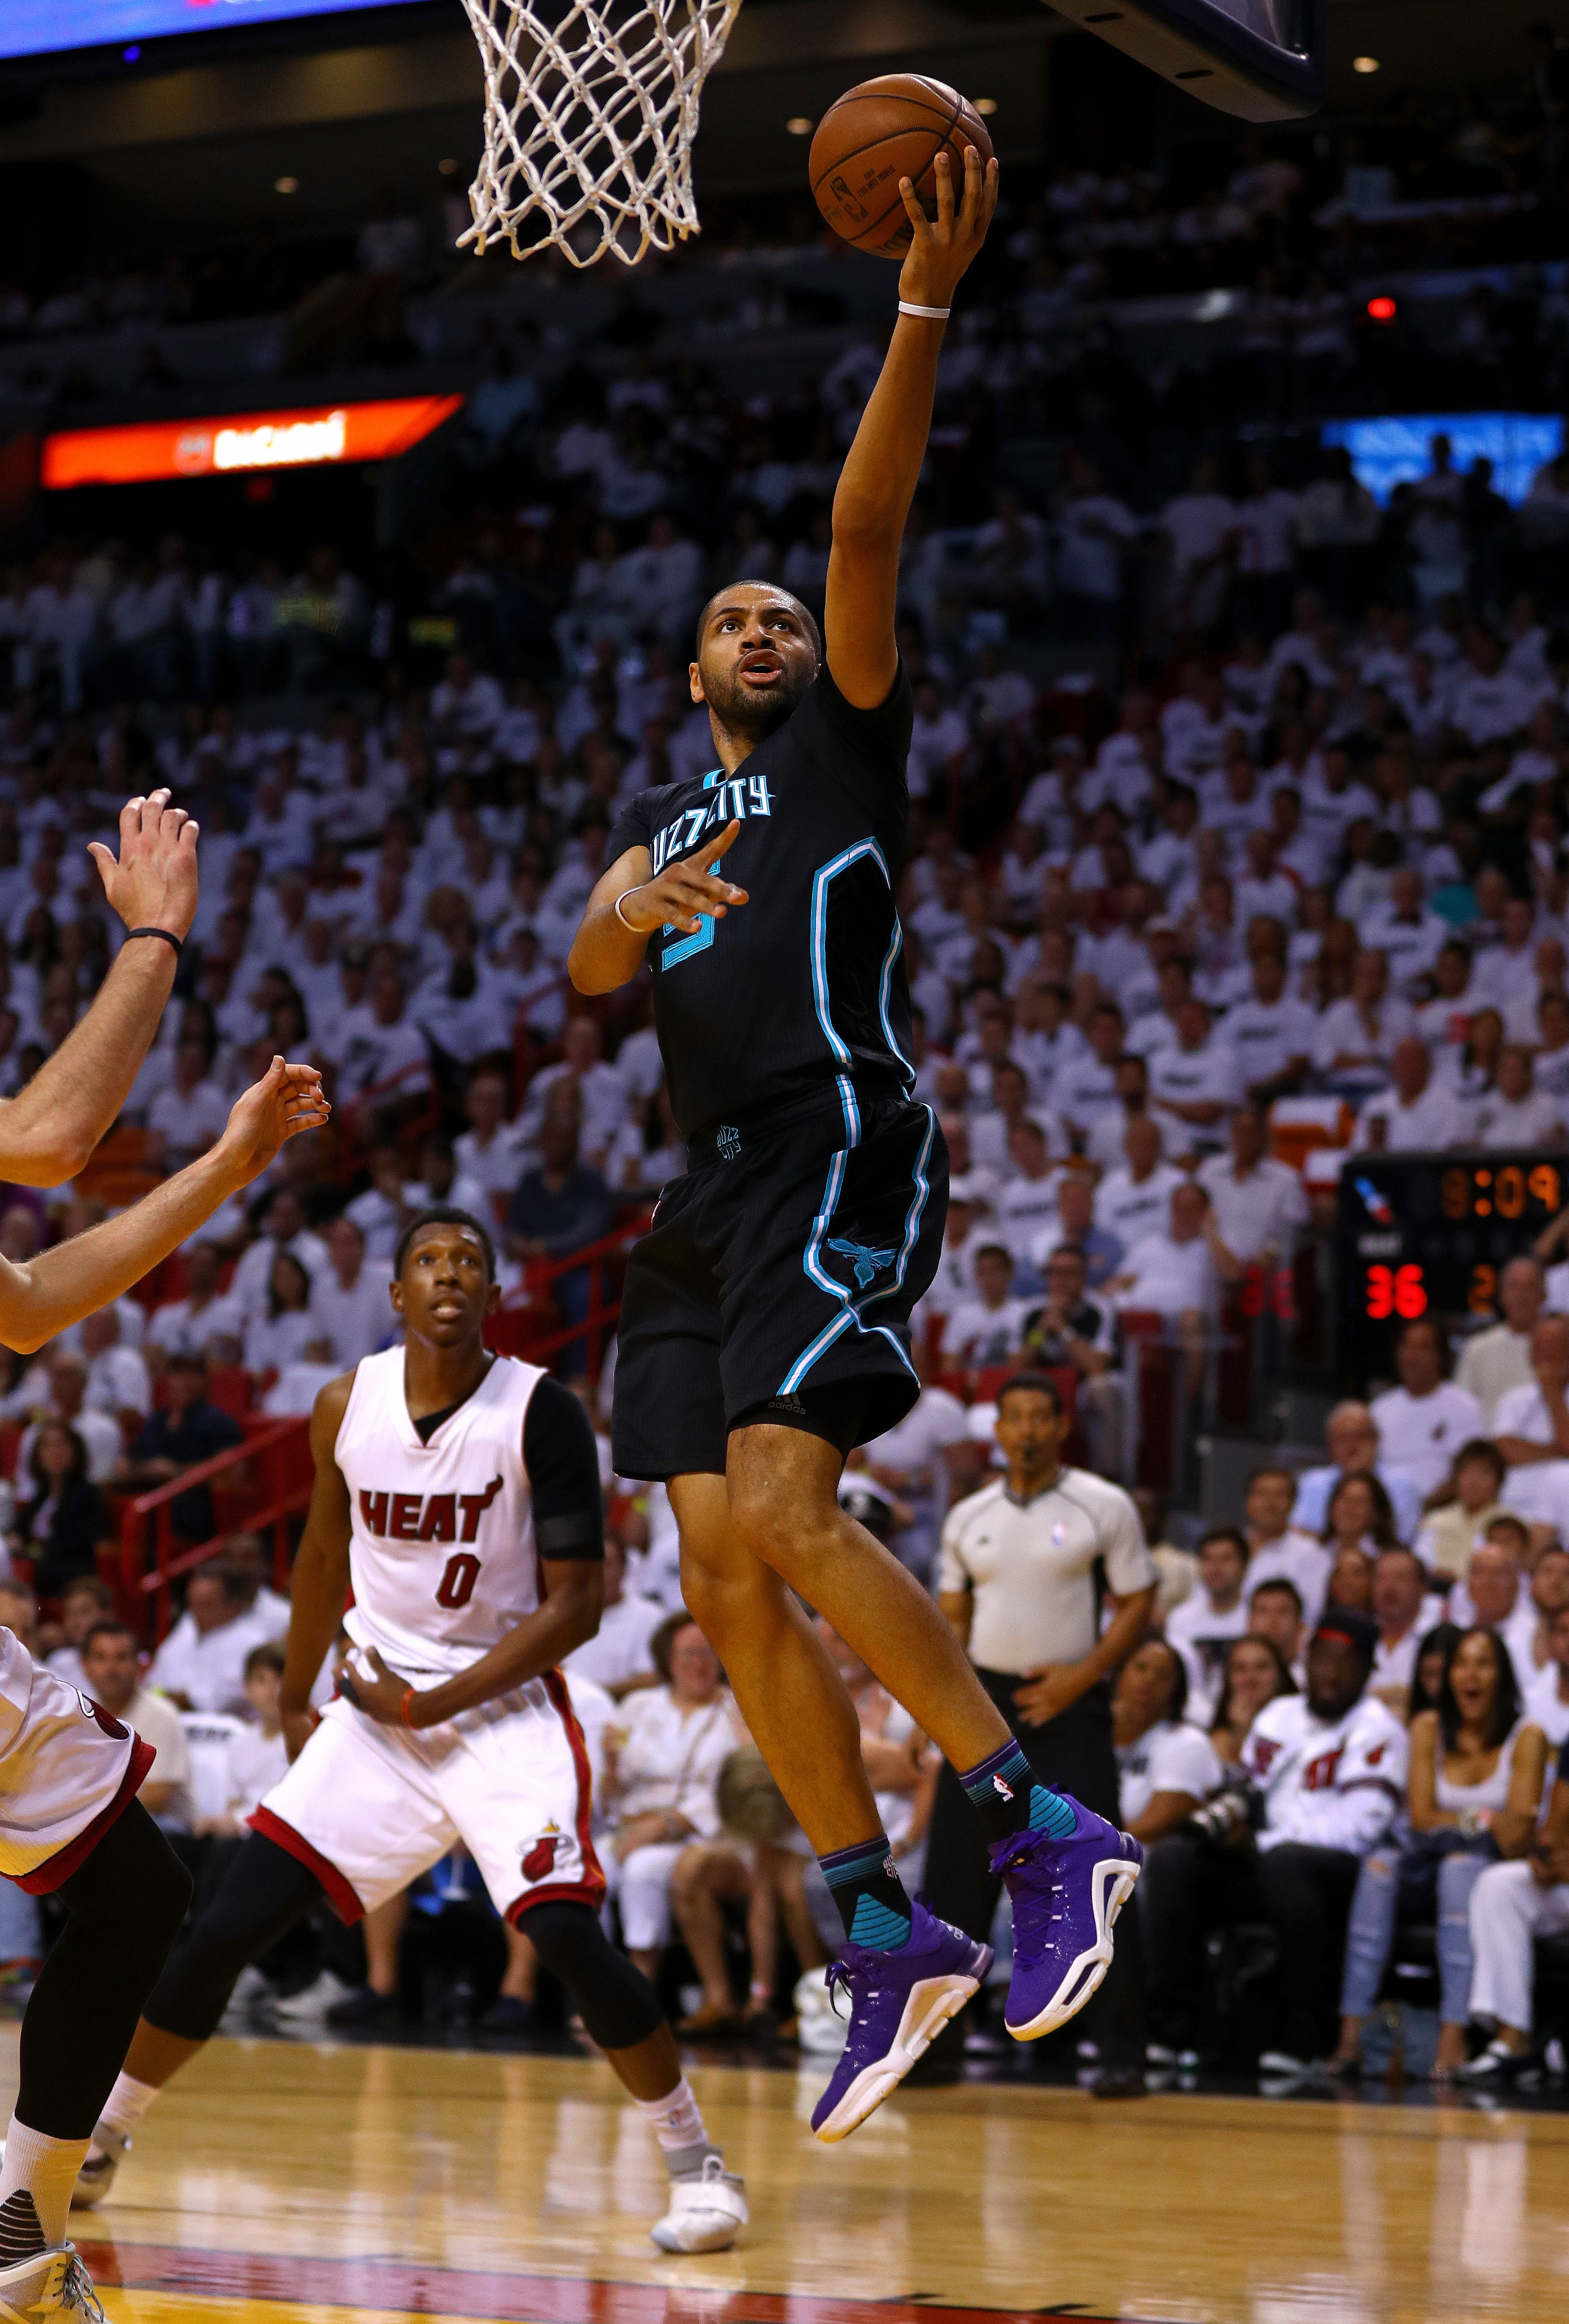 MIAMI, FL - MAY 01: Nicolas Batum #5 of the Charlotte Hornets drives to the basket during Game Seven of the Eastern Conference Quarterfinals of the 2016 NBA Playoffs against the Miami Heat at American Airlines Arena on May 1, 2016 in Miami, Florida. NOTE